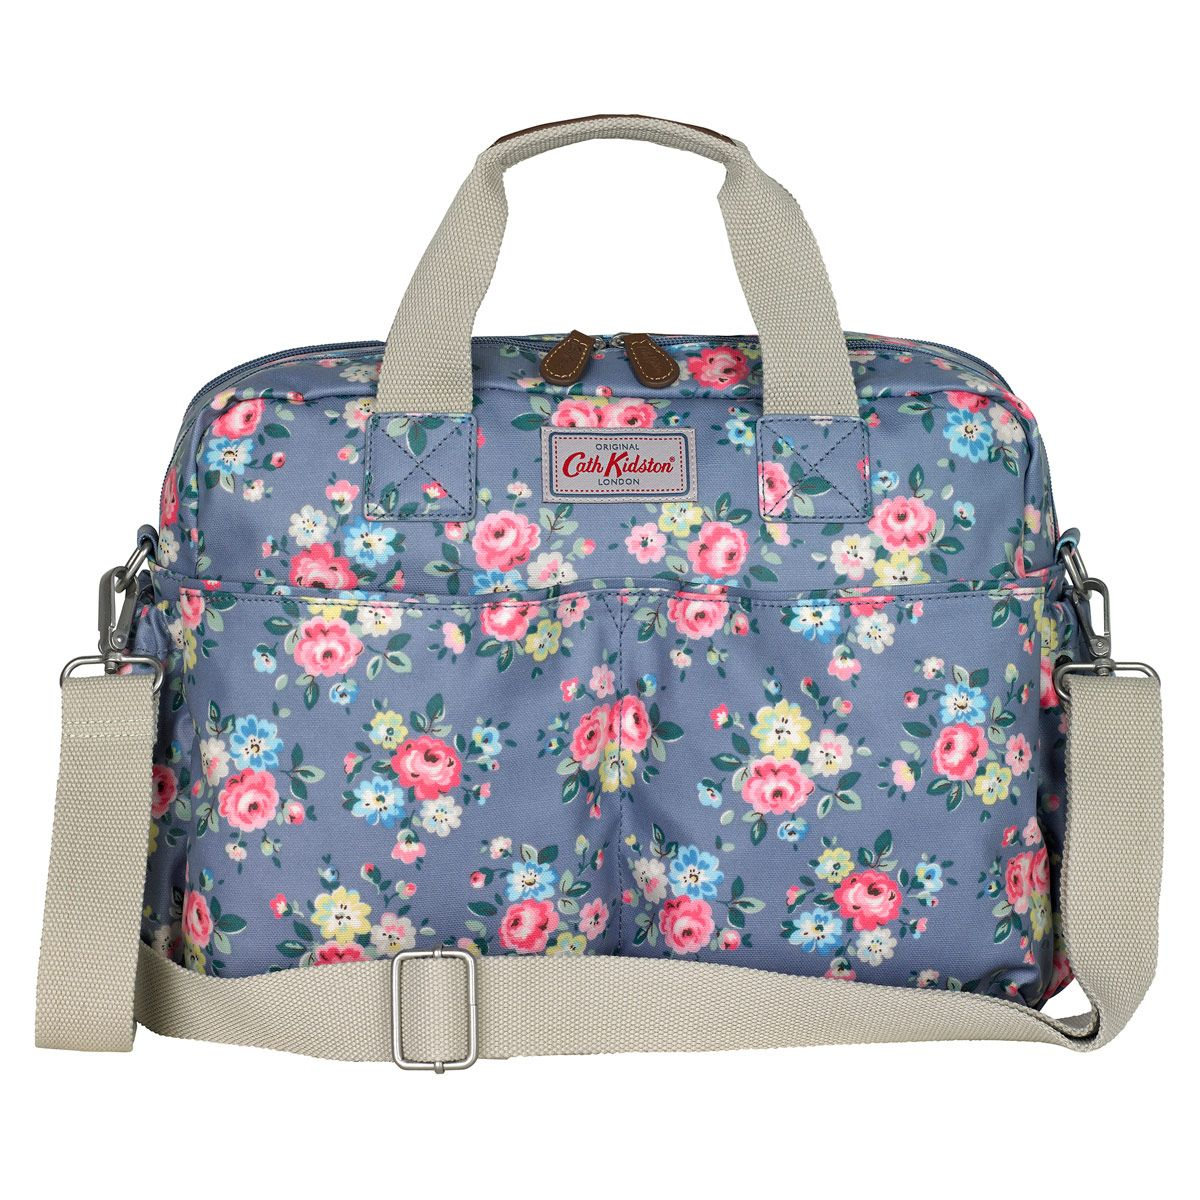 3a366d6f13d19 Latimer Rose Double Pocket Nappy Bag | Changing Bags and Accessories |  CathKidston